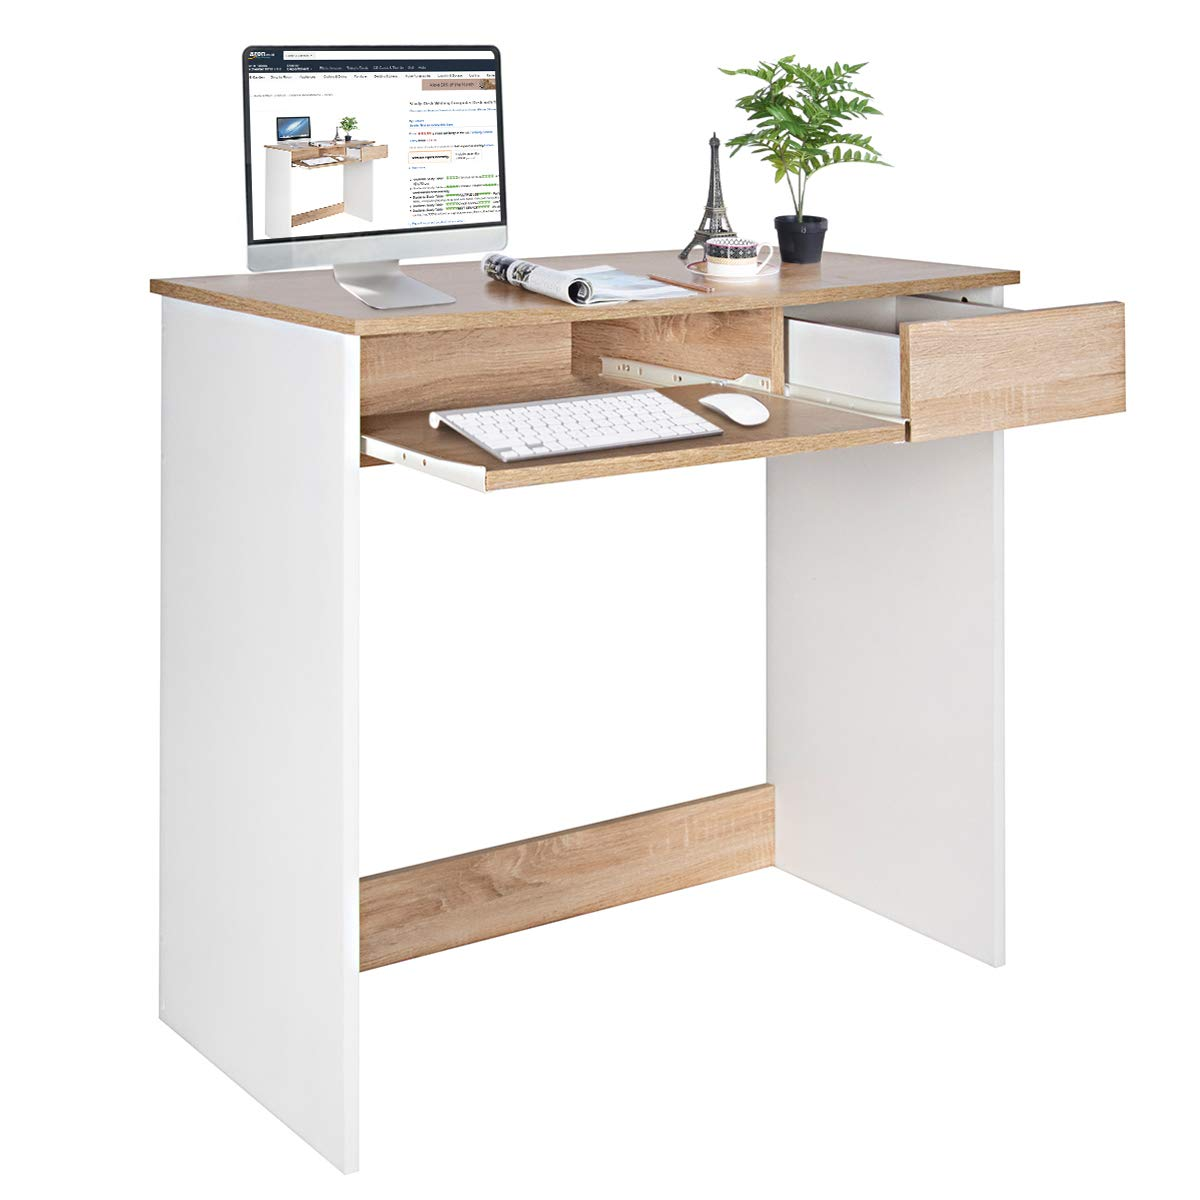 Coavas Computer Desk Study Table Wooden Writing Desk with Cupboard Drawers  and Keyboard Tray Desktop PC Table for Adults